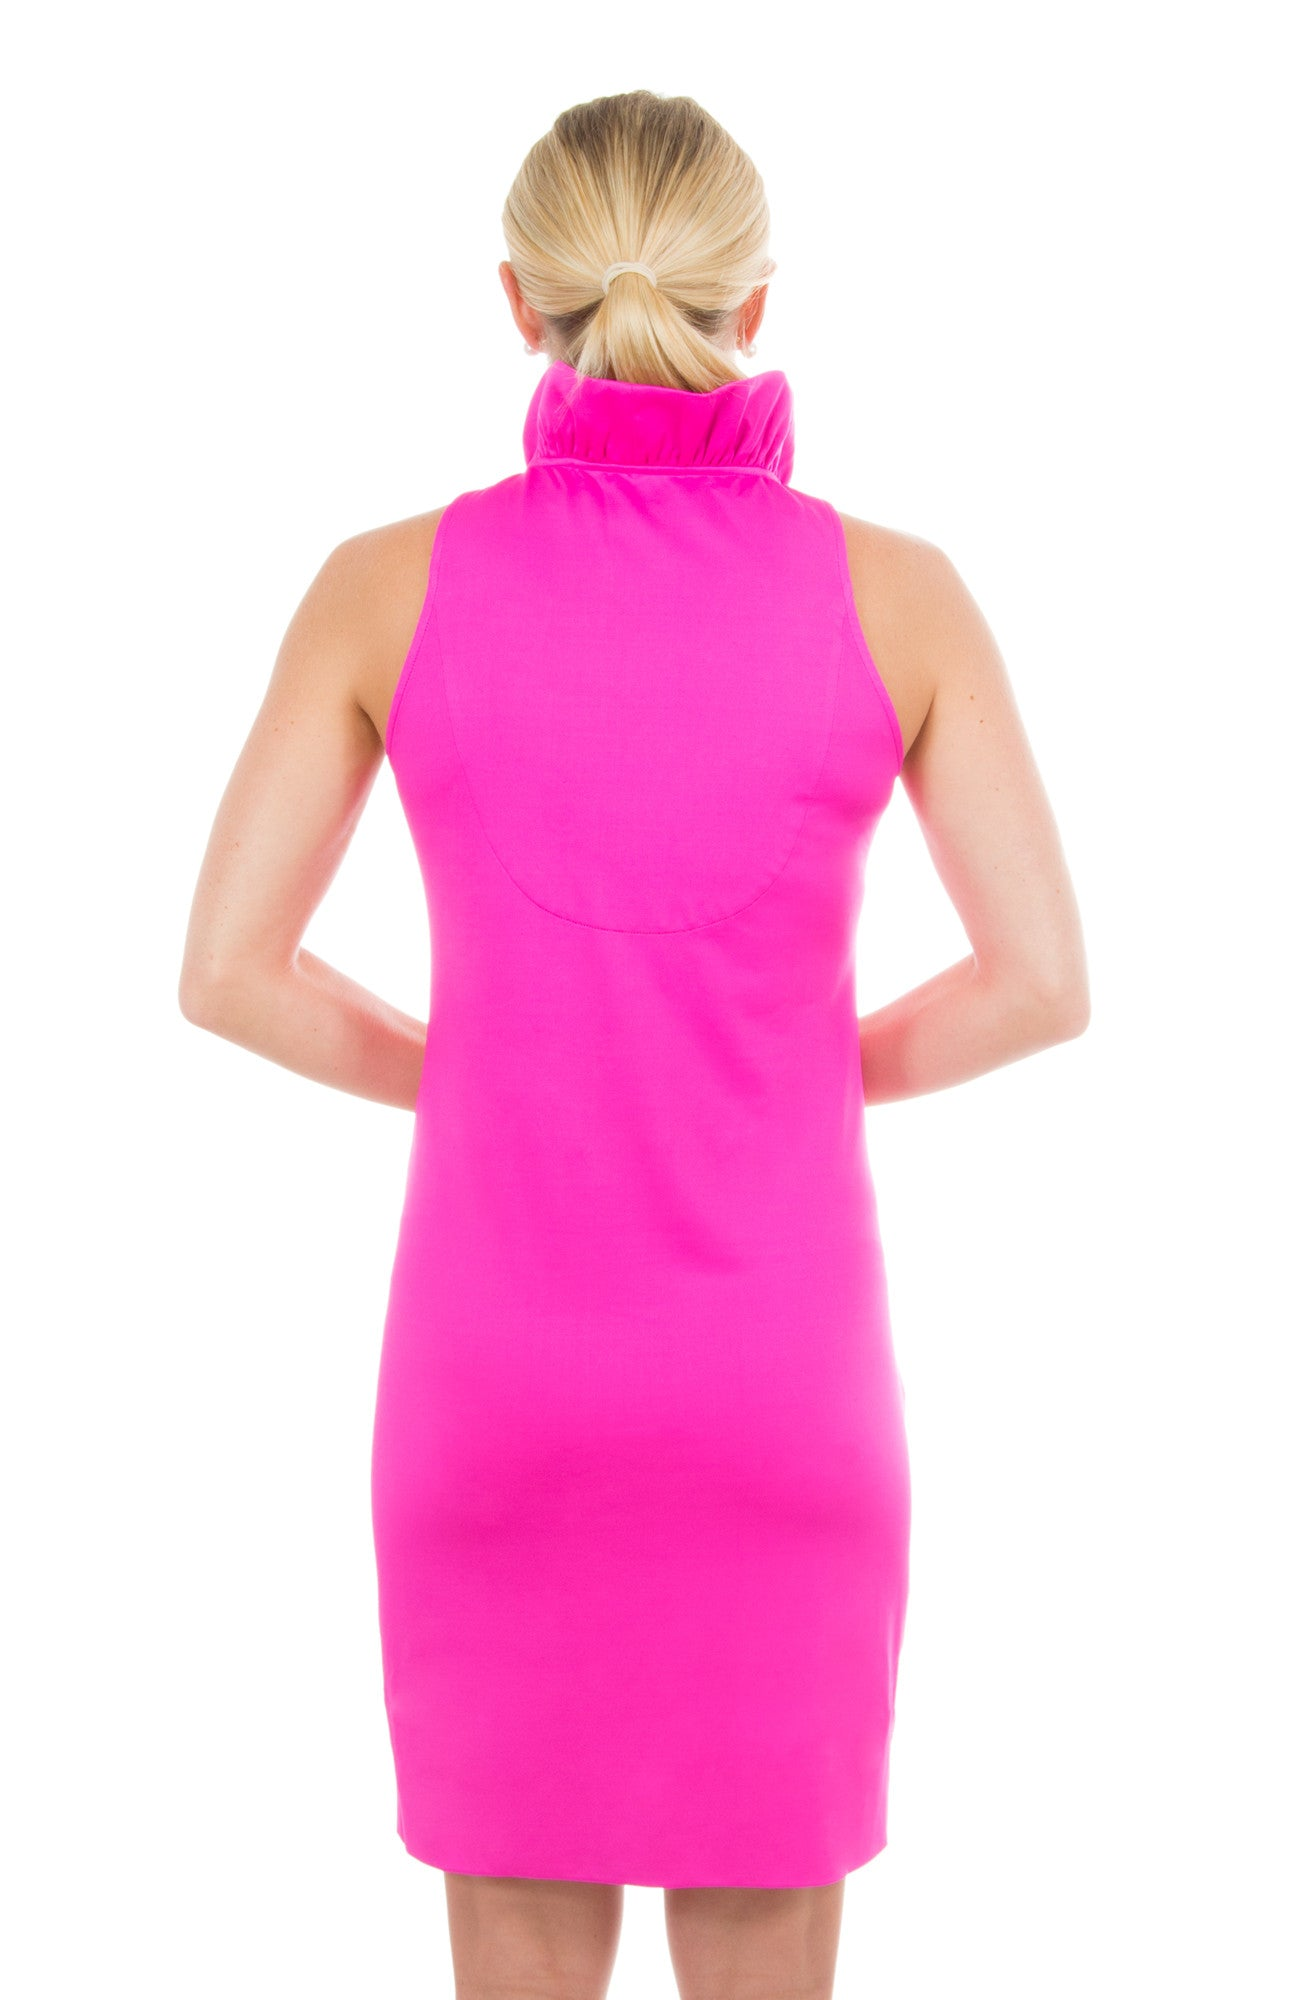 Gretchen Scott Ruff Neck Sleeveless Jersey Dress - Solid Pink